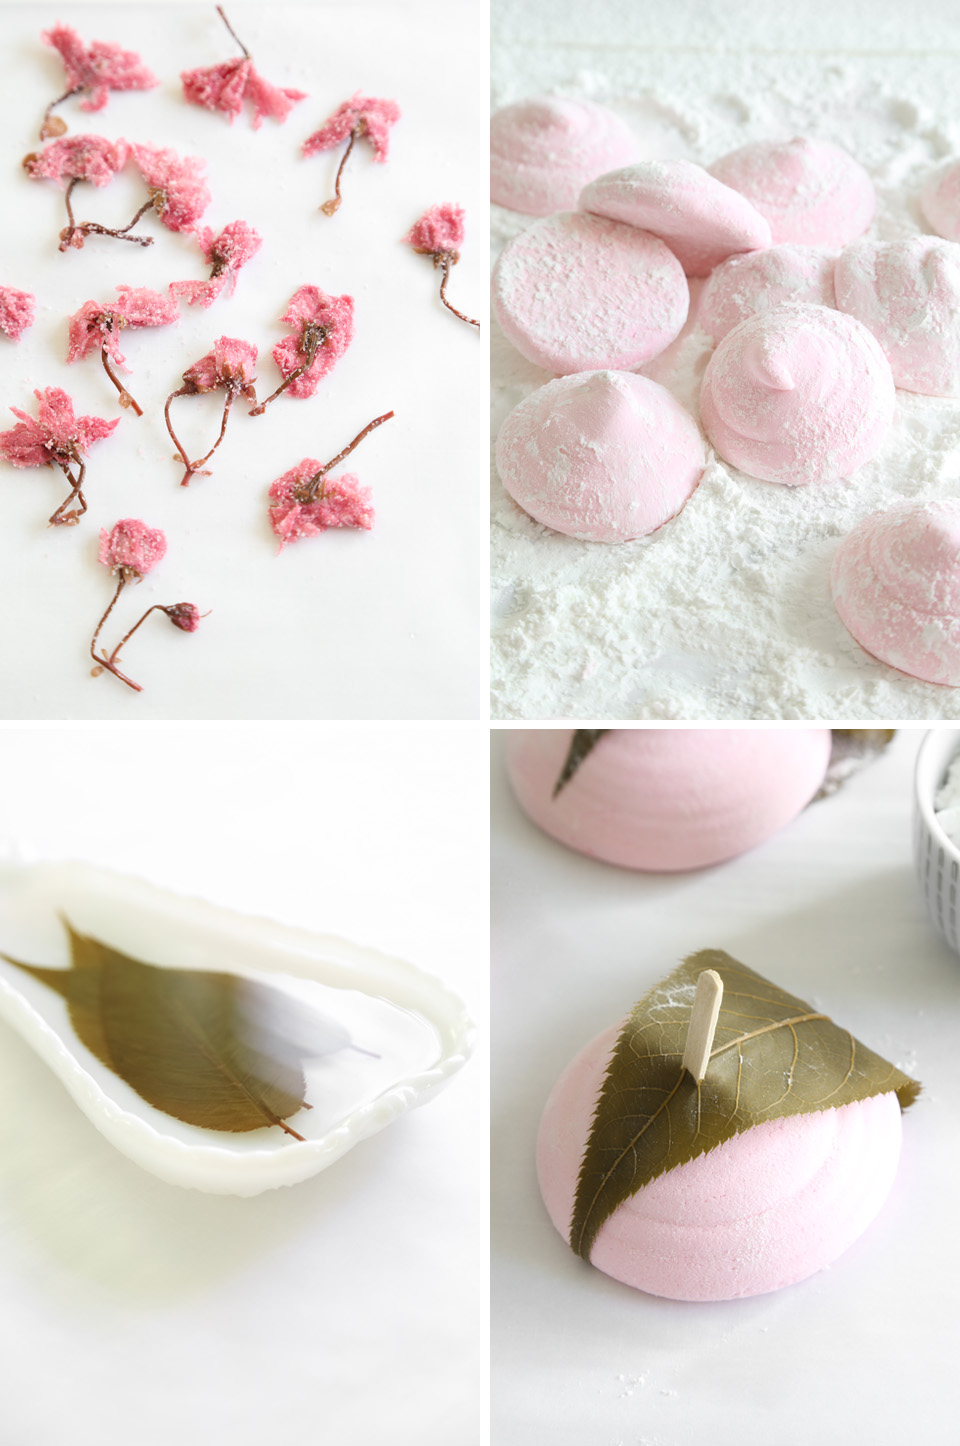 Strawberry-Sakura Marshmallows